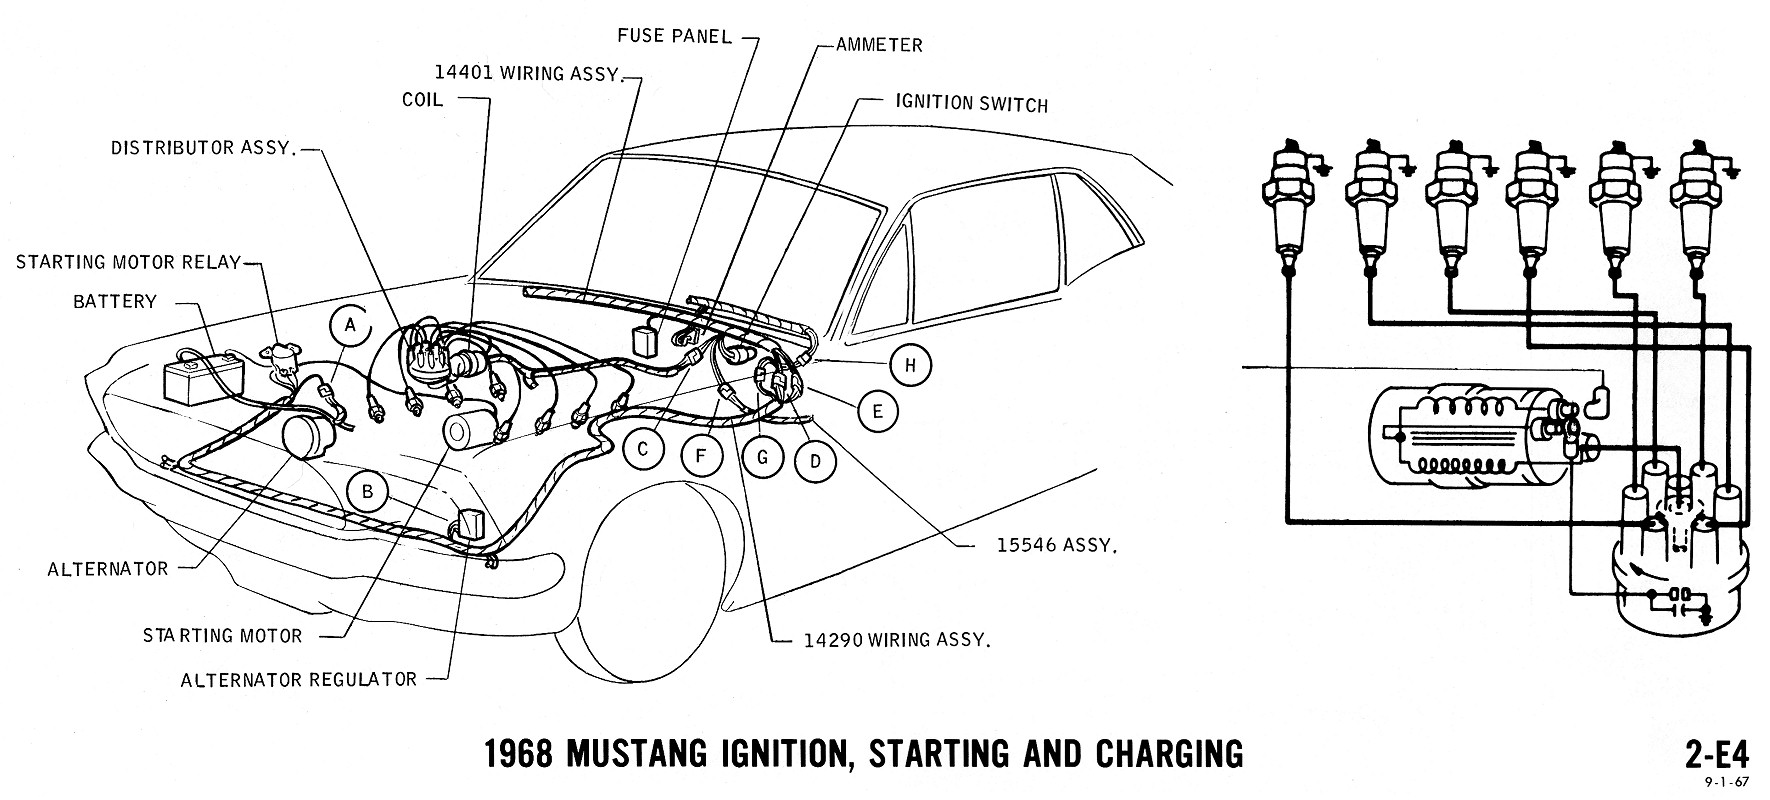 1968 mustang wiring diagram ignition starting charging 2 1968 mustang wiring diagrams and vacuum schematics average joe 1969 ford mustang ignition wiring diagram at n-0.co